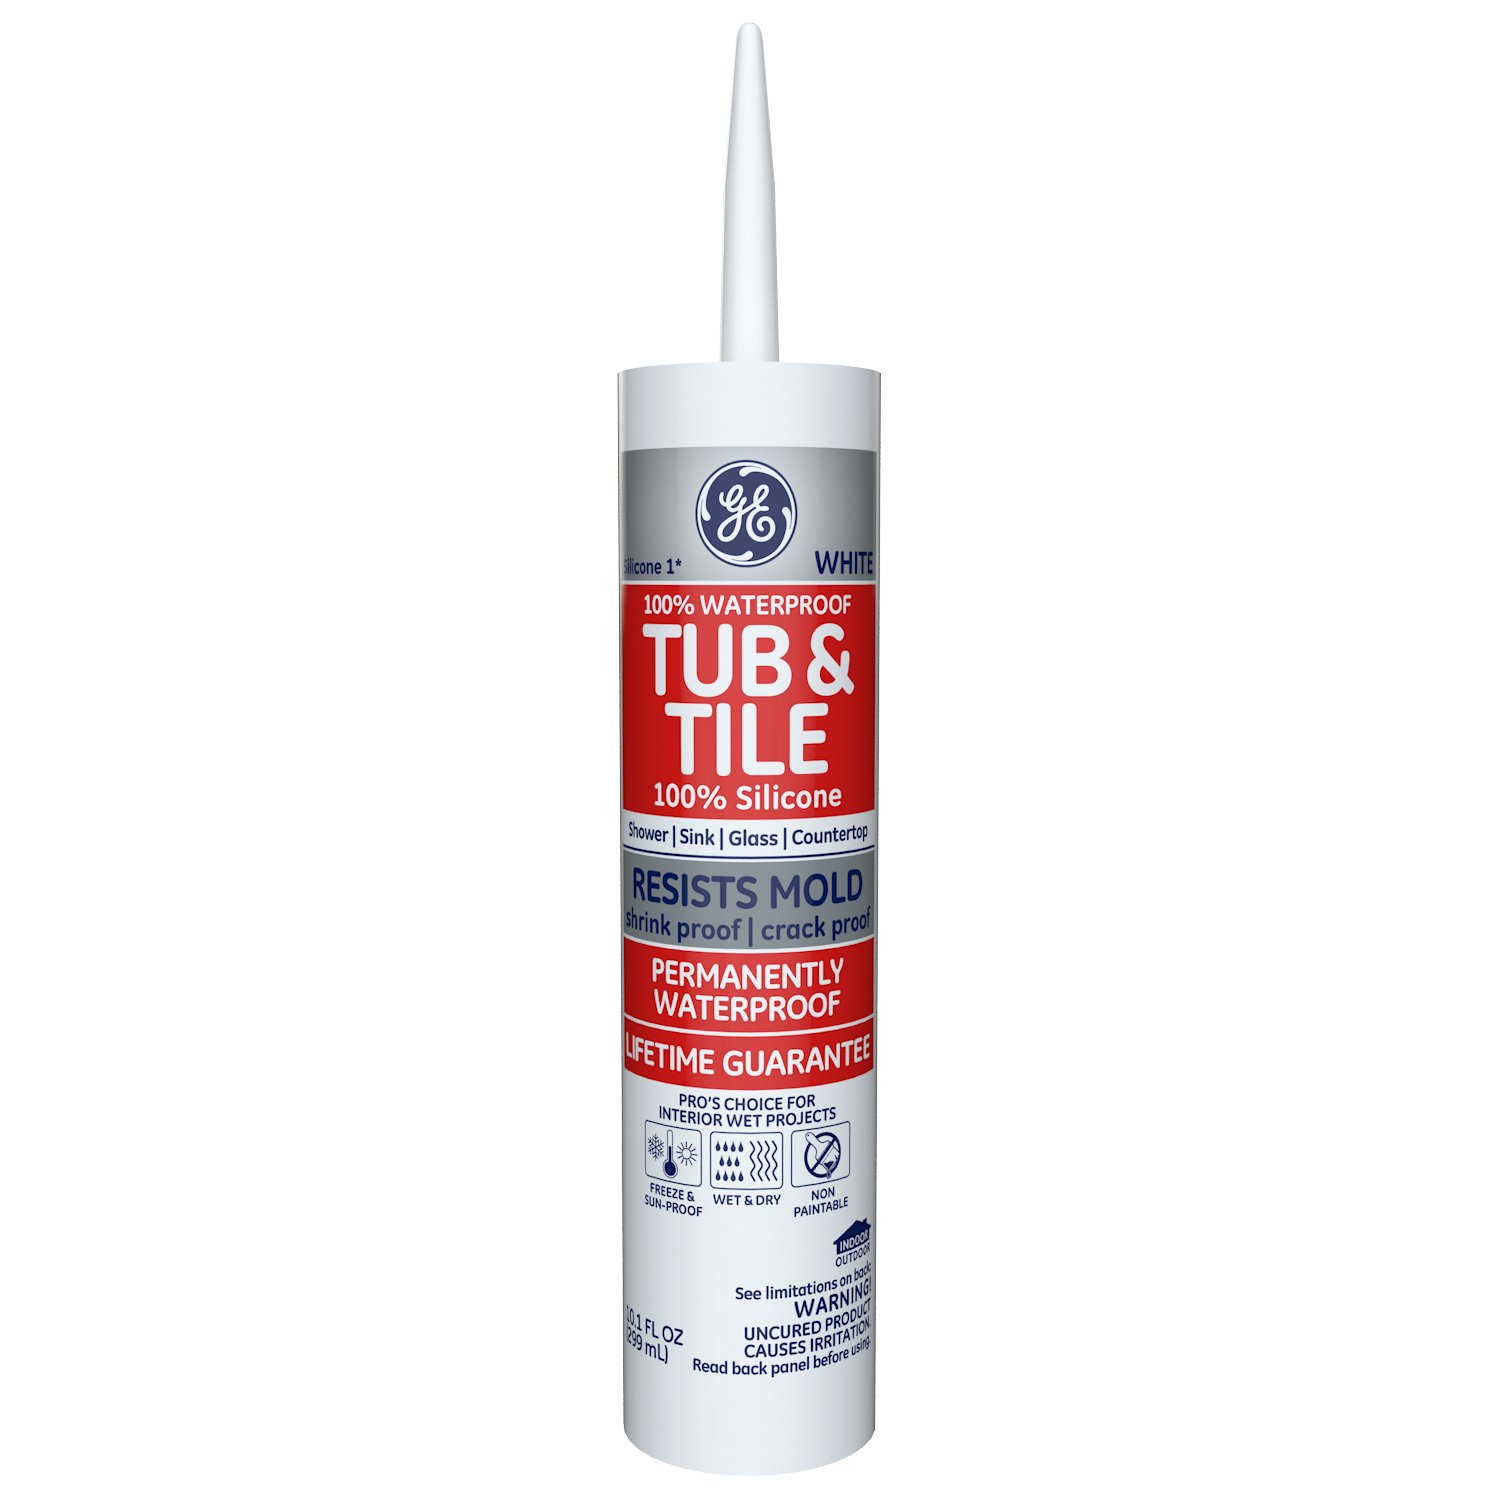 GE GE712 Silicone 1 Tub & Tile Sealant Caulk, 10.1oz, White